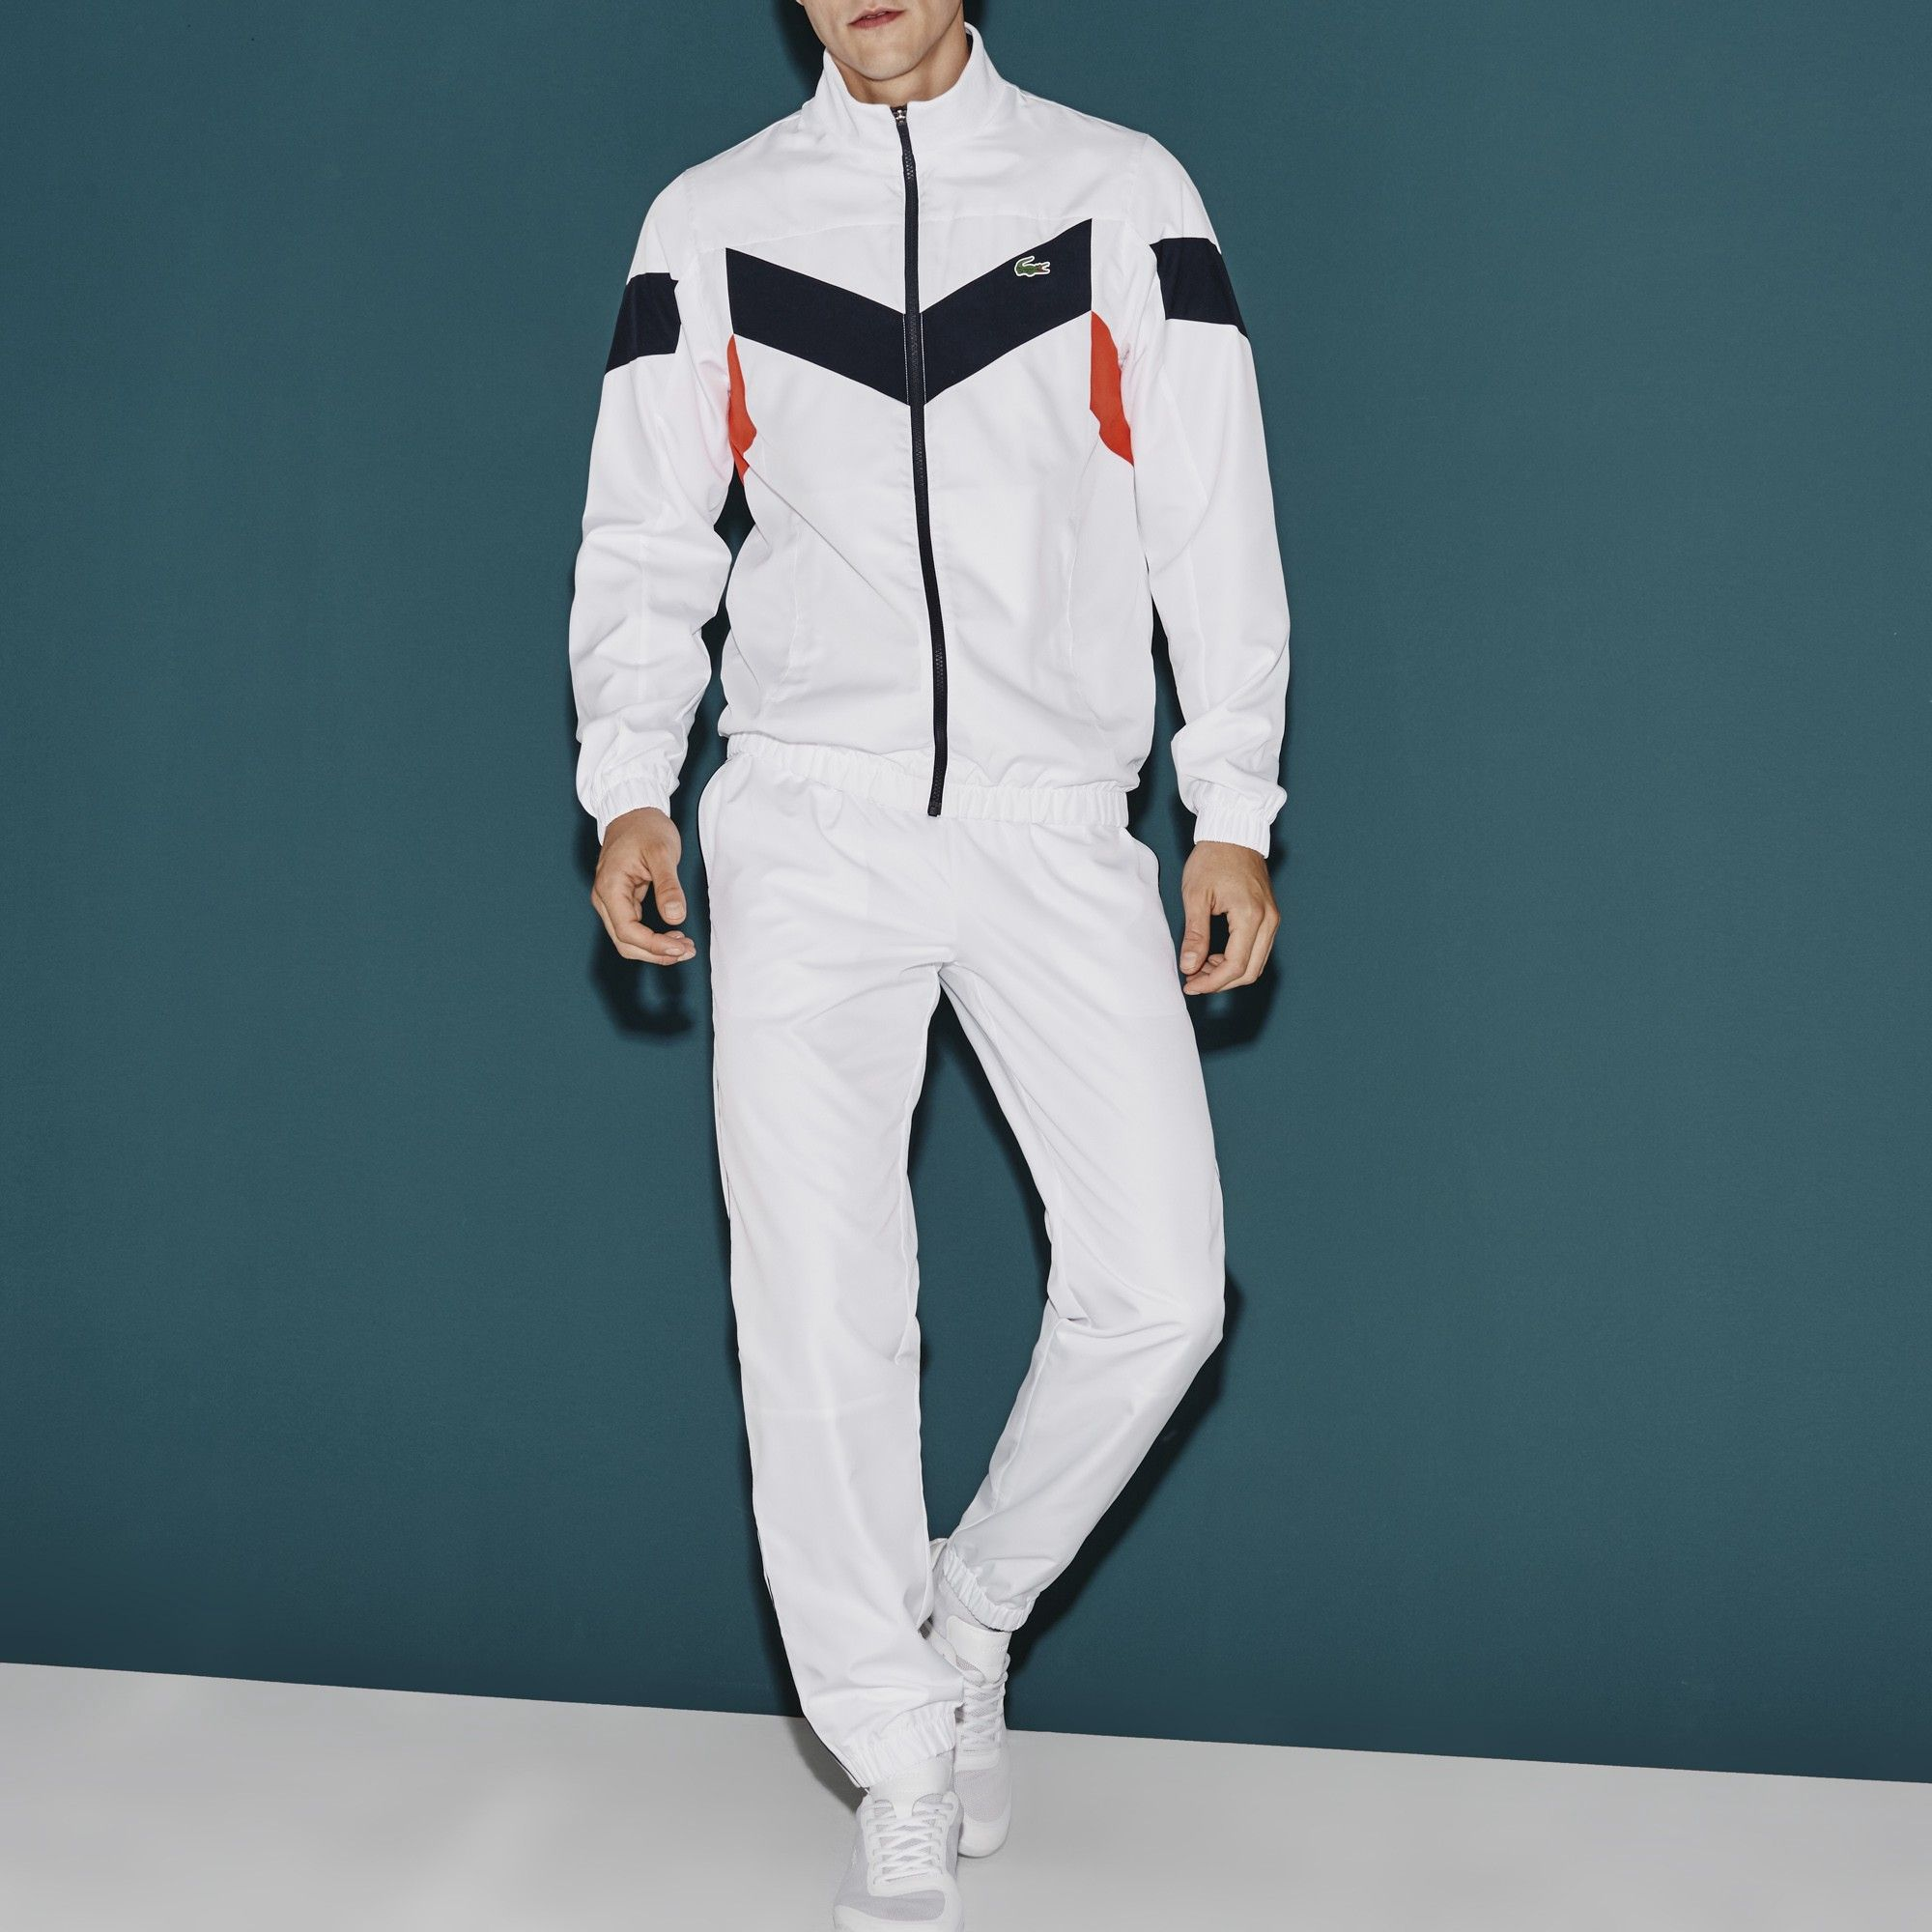 7f28aed60b LACOSTE Men's SPORT Tennis Colorblock Tracksuit - white/navy blue ...